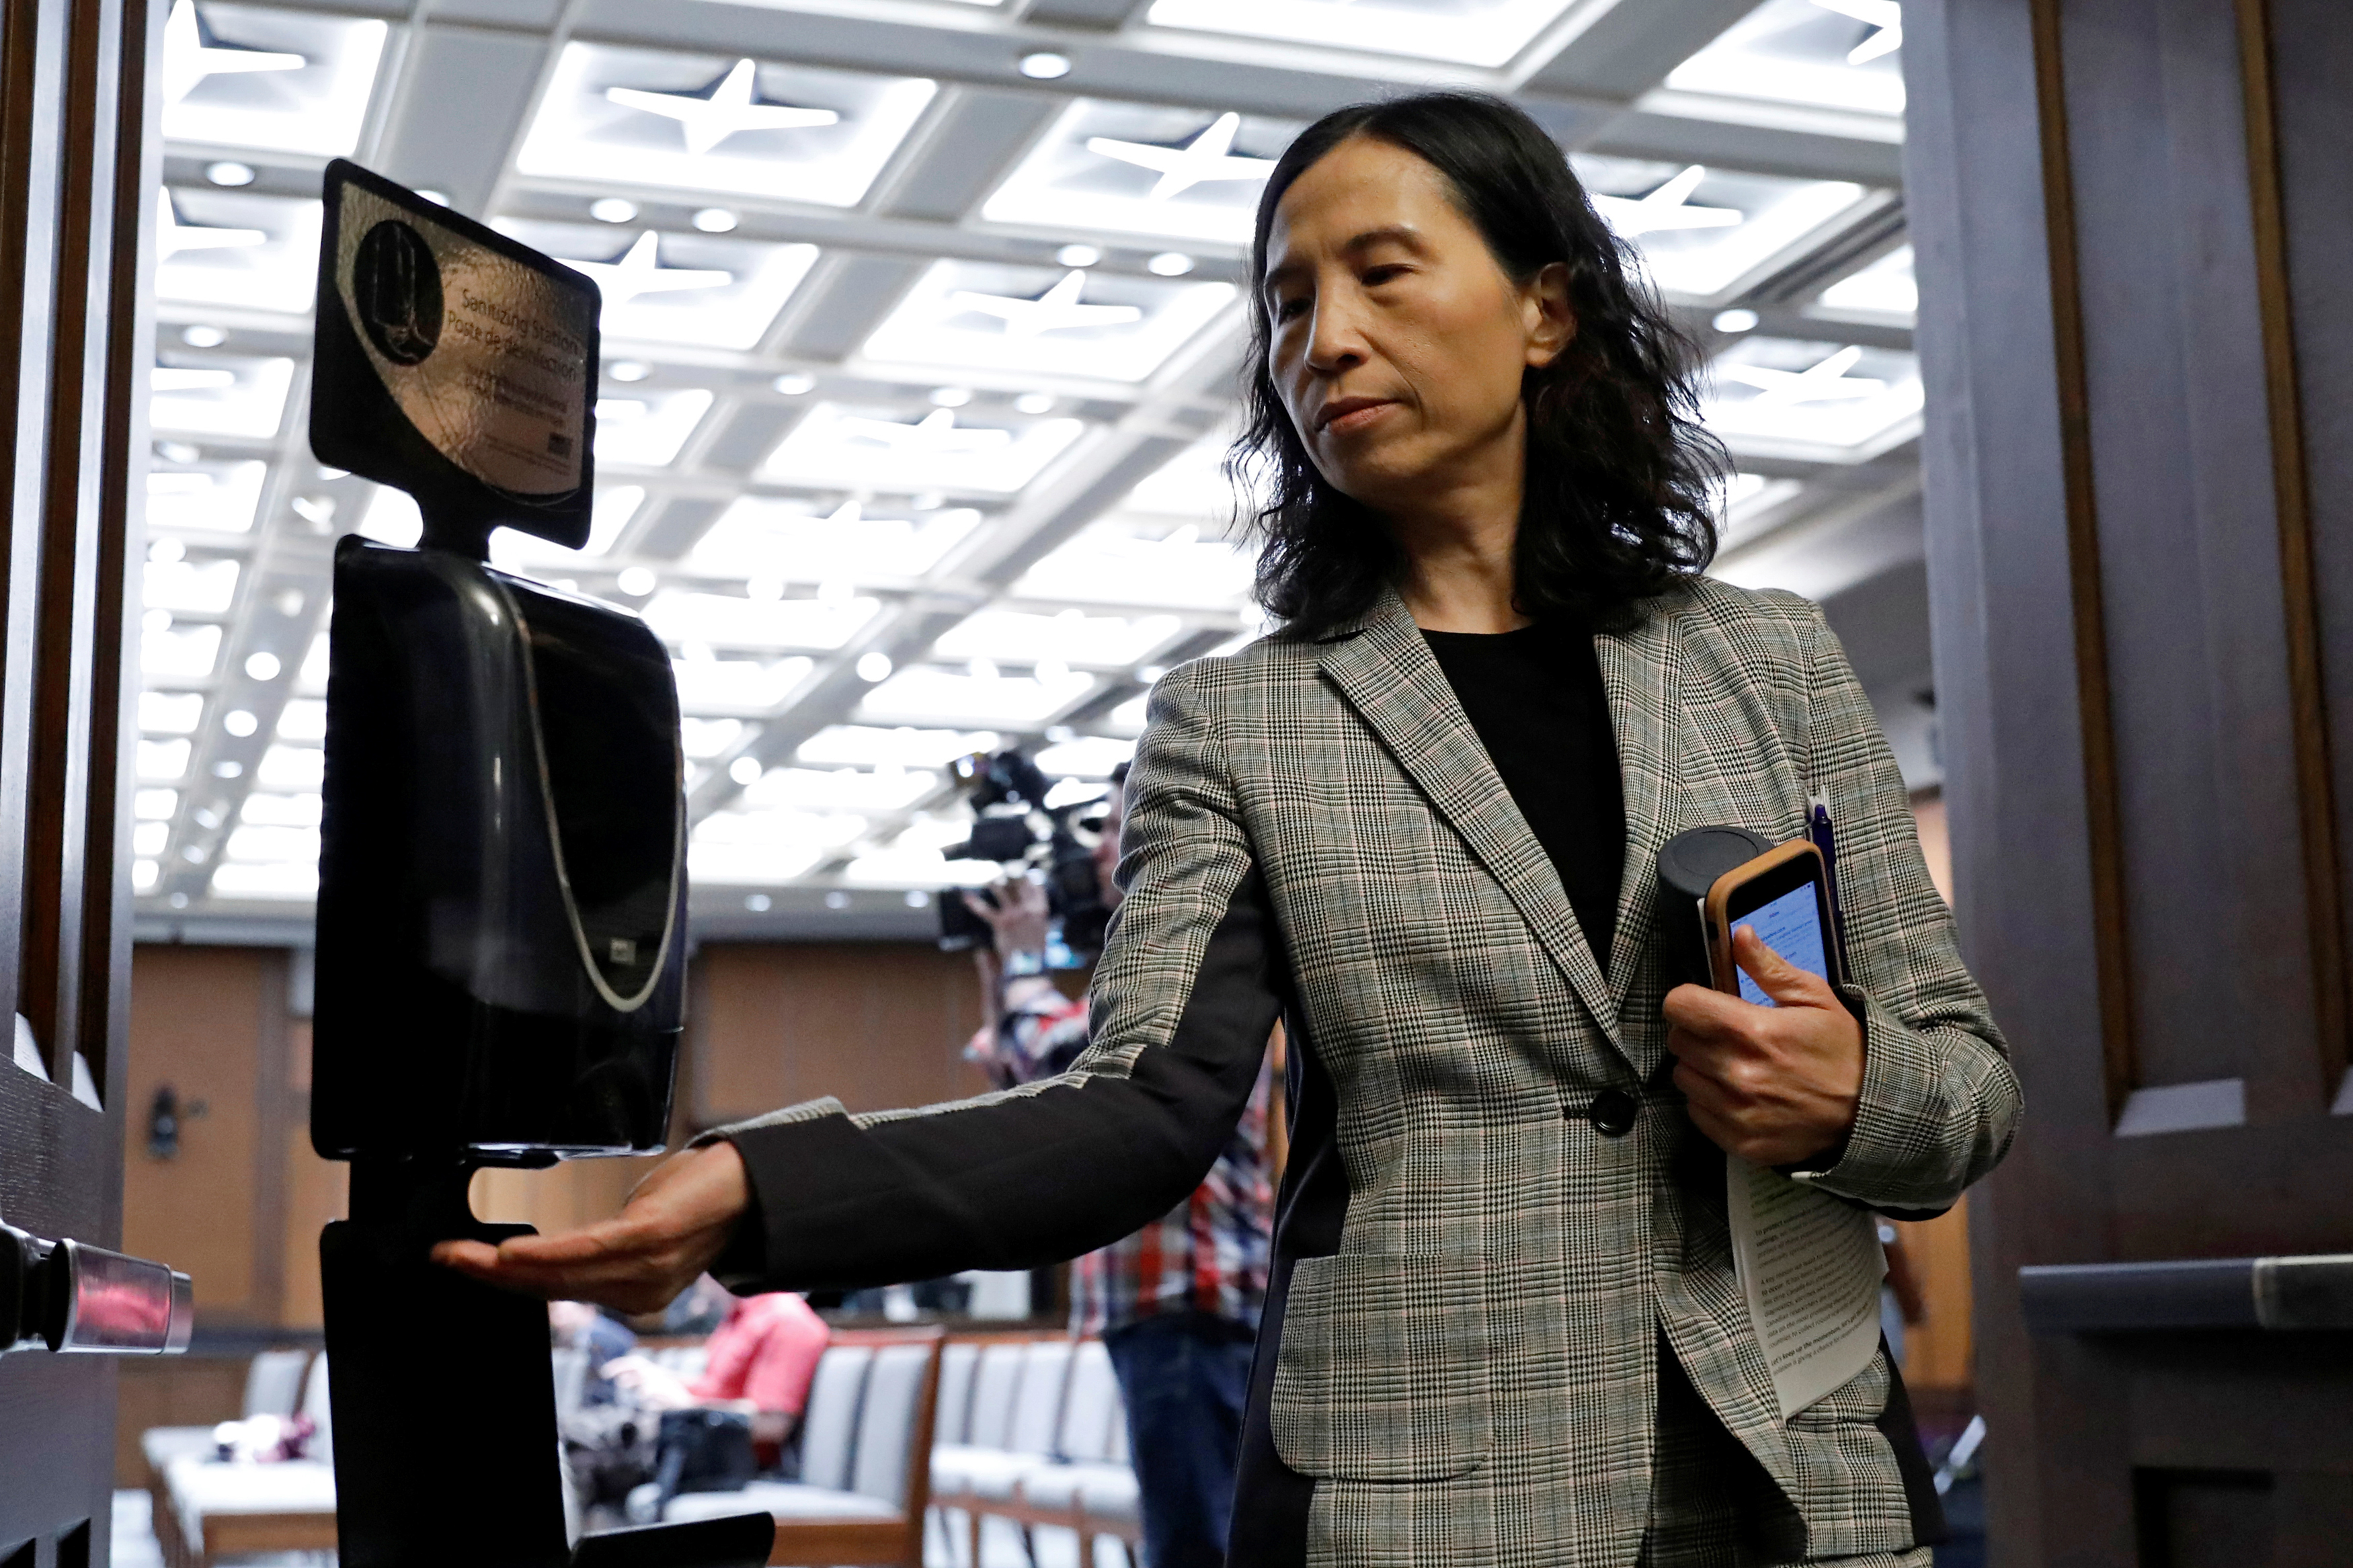 Chief Public Health Officer Dr. Theresa Tam in Ottawa on March 23, 2020; early messaging prioritized hand sanitizing, not masks (Blair Gable/Reuters)